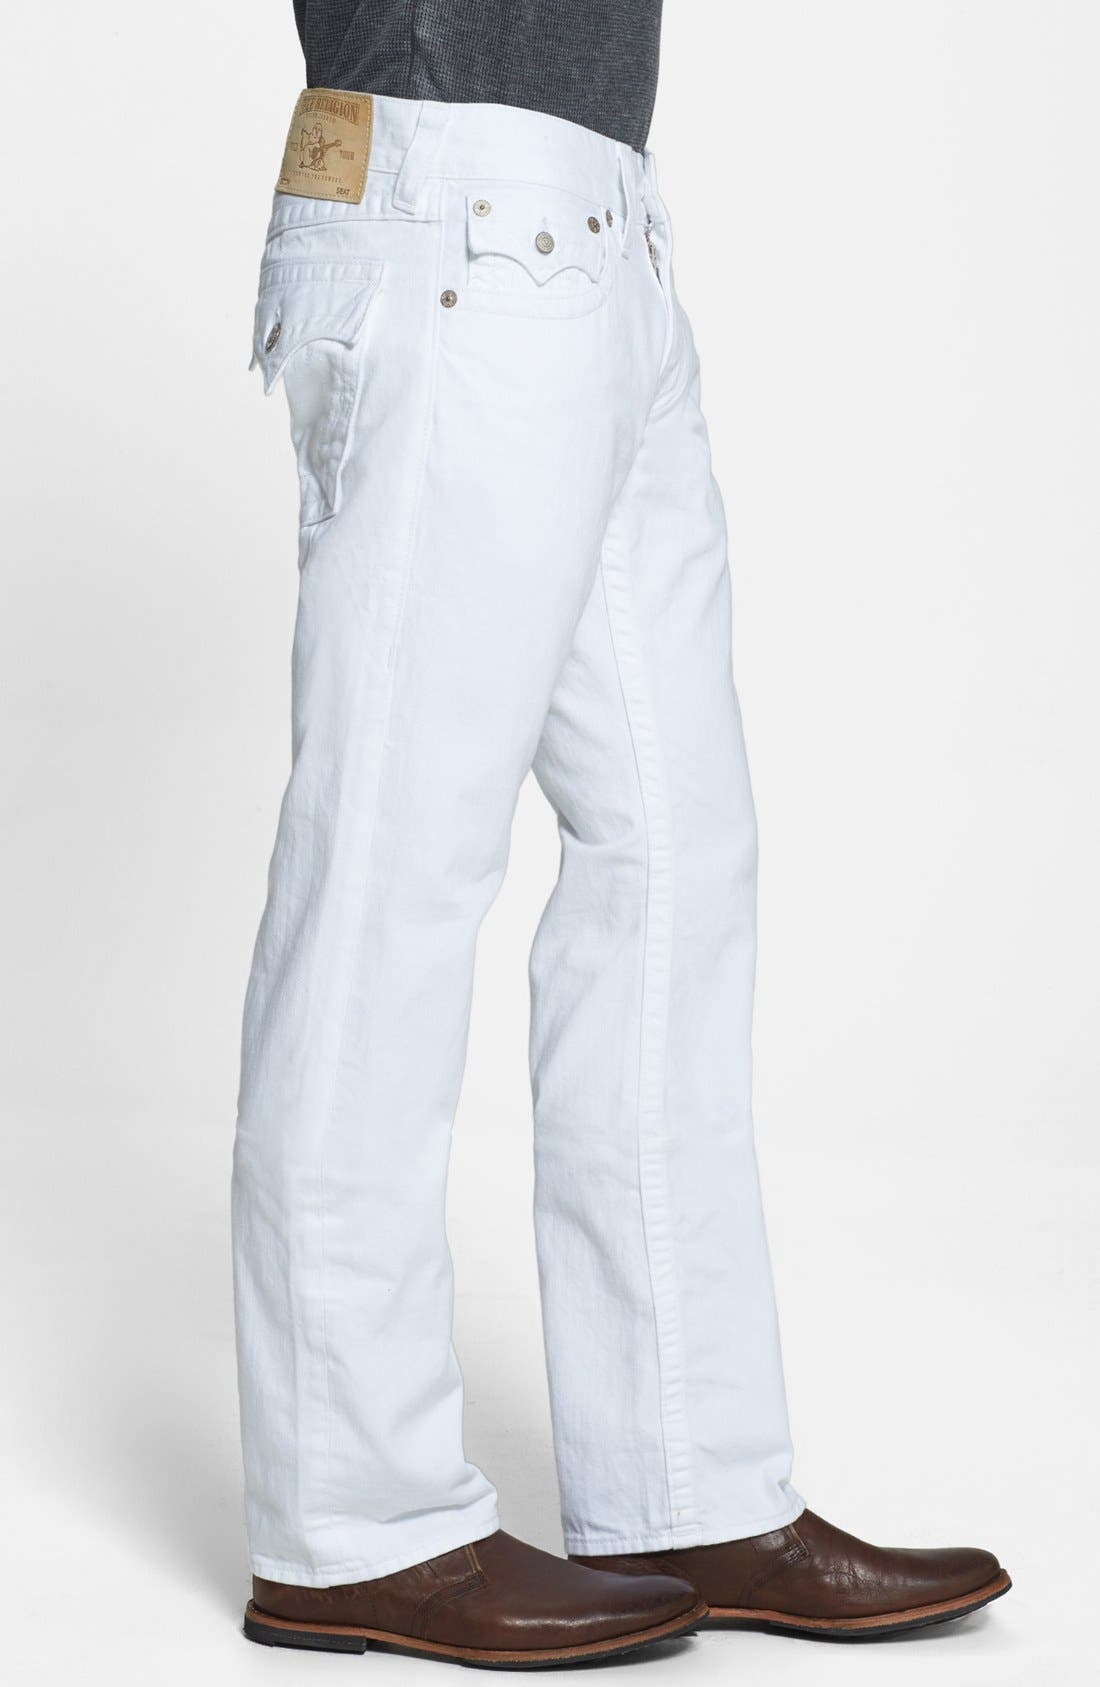 Alternate Image 3  - True Religion Brand Jeans 'Ricky' Relaxed Fit Jeans (Optic White)